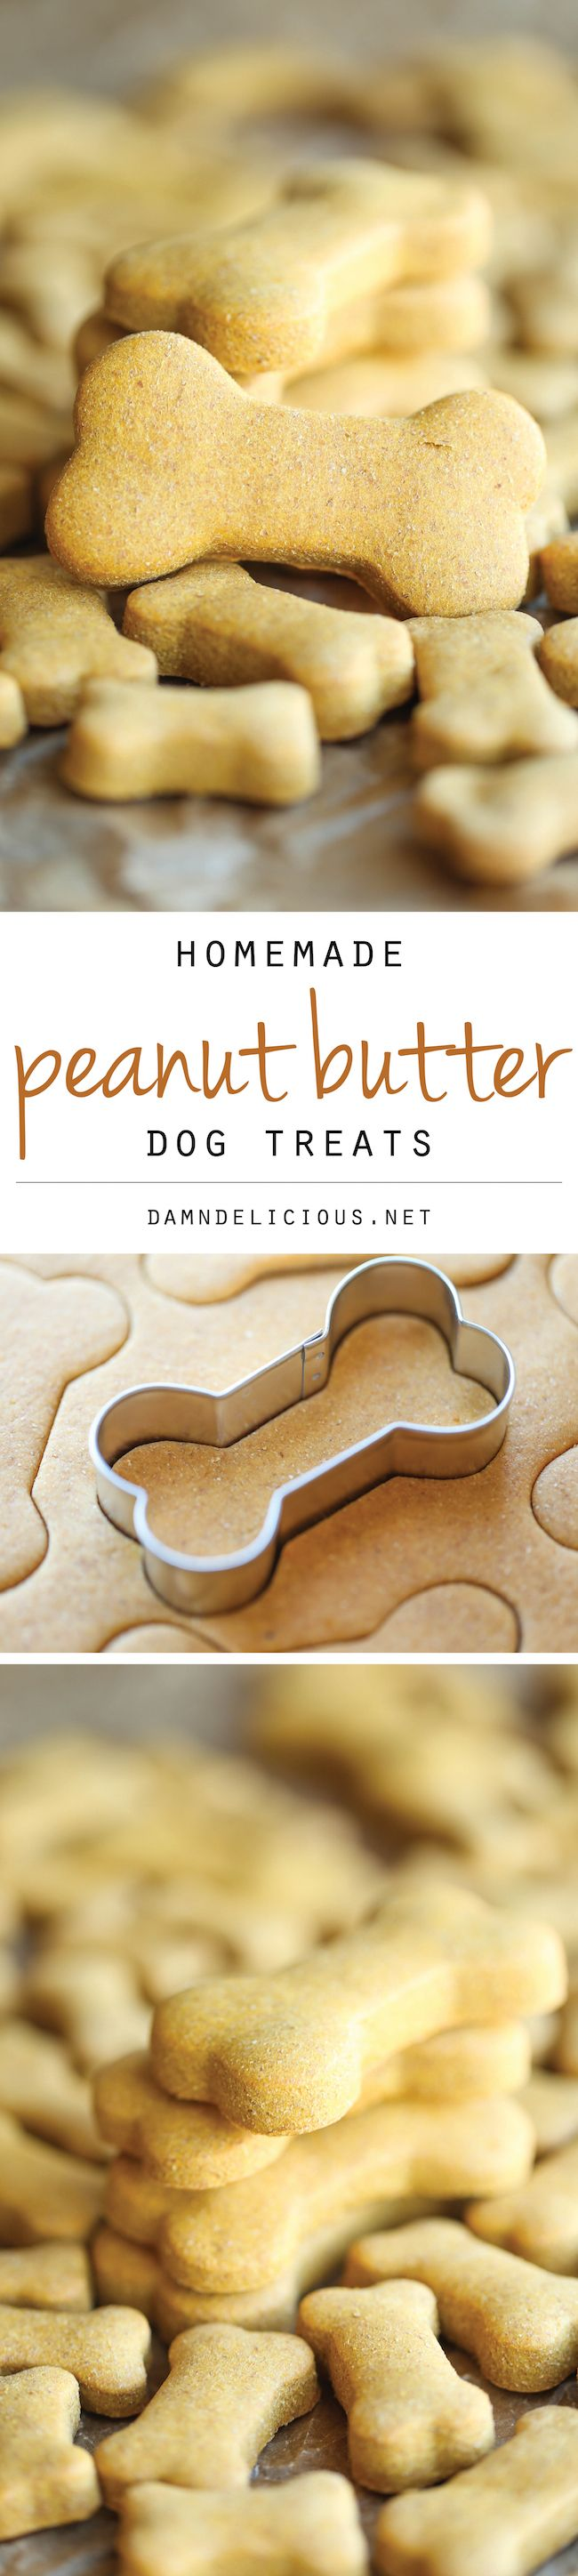 "DIY Homemade Peanut Butter Dog Treats -{Damn Delicious}.. ""The easiest homemade dog treats ever - simply mix, roll and cut. Easy peasy, and so much healthier than store-bought!"""